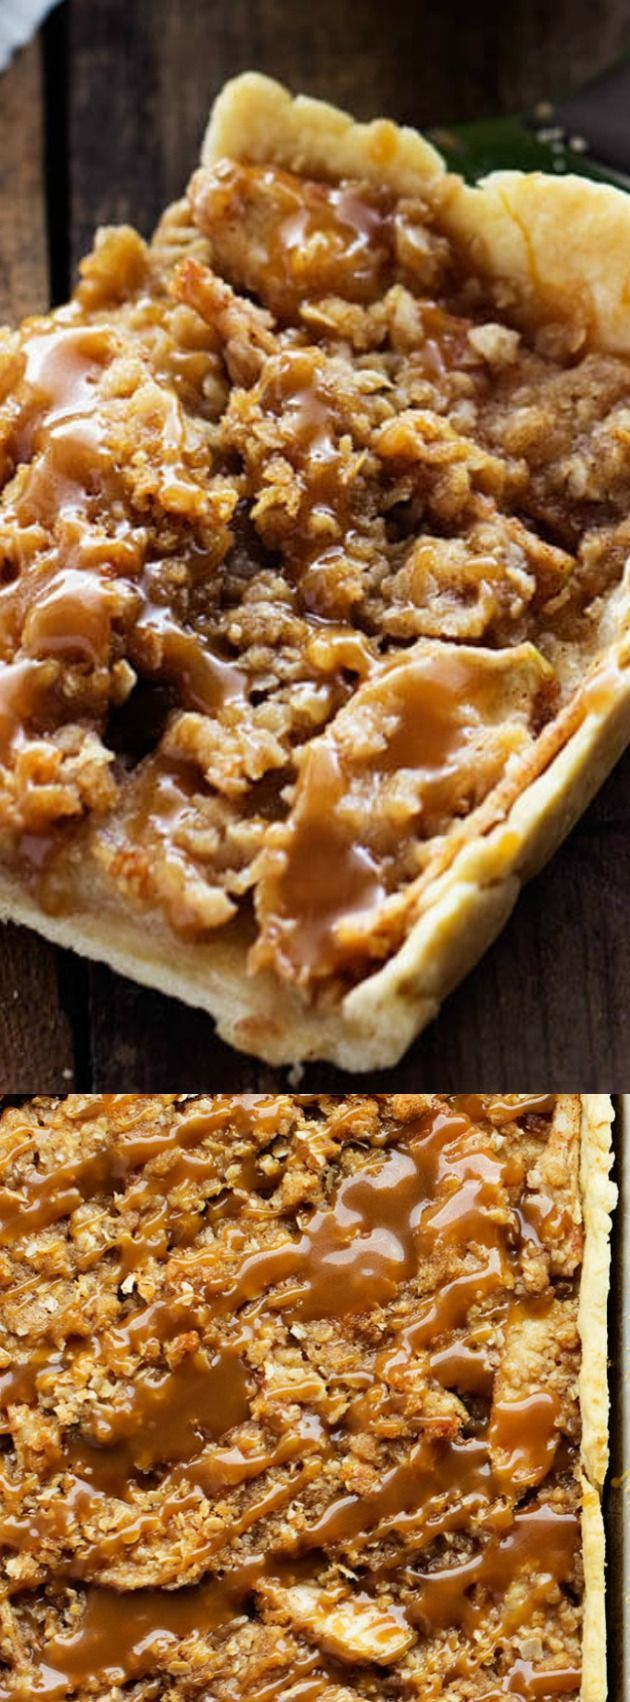 ^^ This Caramel Apple Slab Pie recipe from The Recipe Critic is a deliciously thin and flaky melt in your mouth fall dessert that you are going to LOVE!